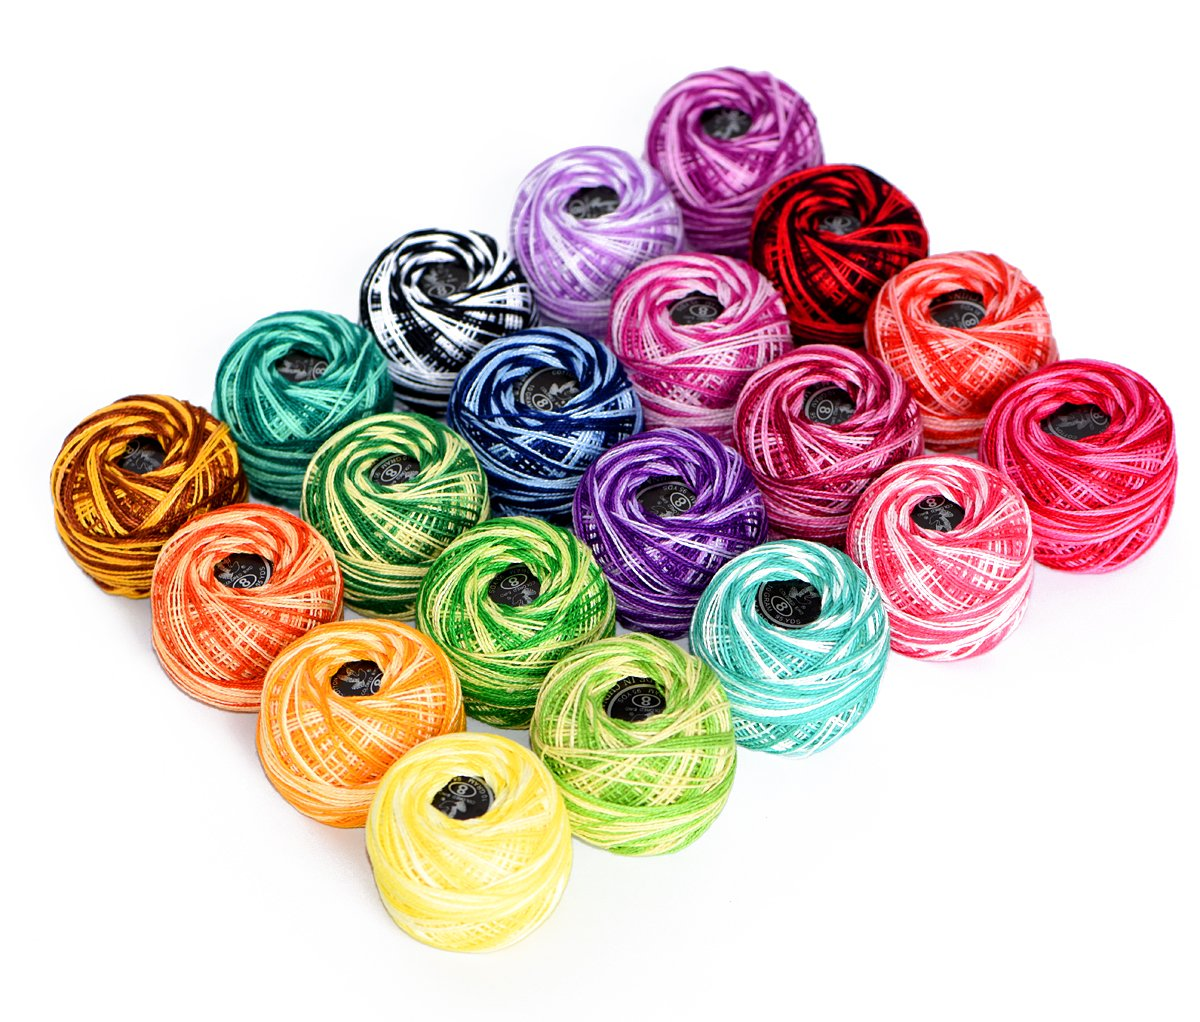 LE PAON100% Cotton Yarn Variegated Crochet Thread Balls 20 Balls Popular Rainbow Colors of Size 8 47.5 Yards Balls 950 Yards 100% Long Staple Cotton Mercerized Cotton Wuxi Chaoqiang Adornment Co. Ltd. 4336923411